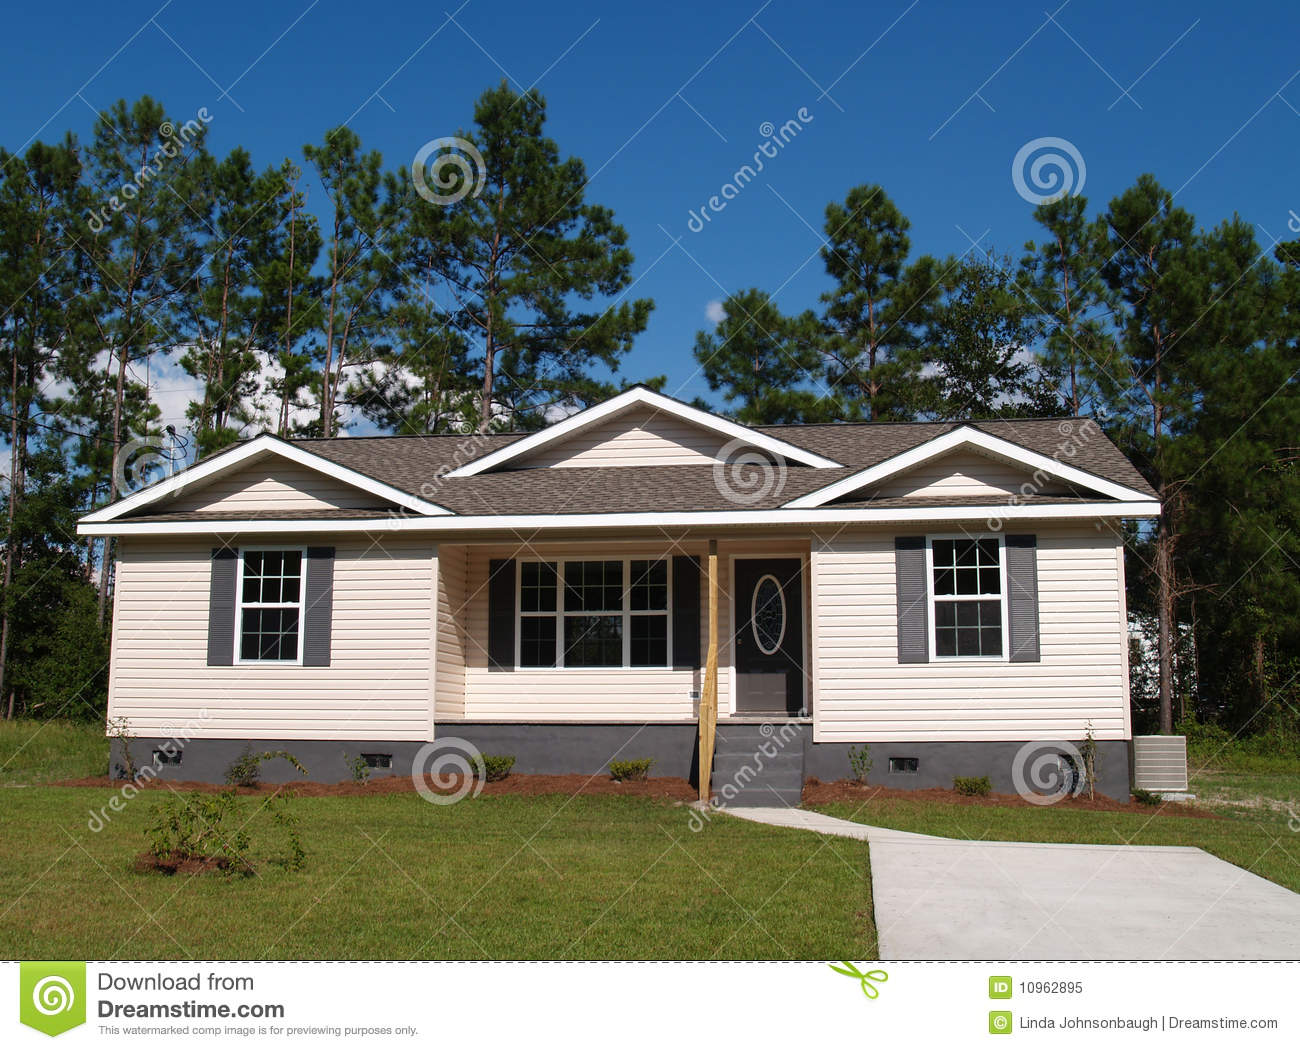 Small low income residential home royalty free stock photo image